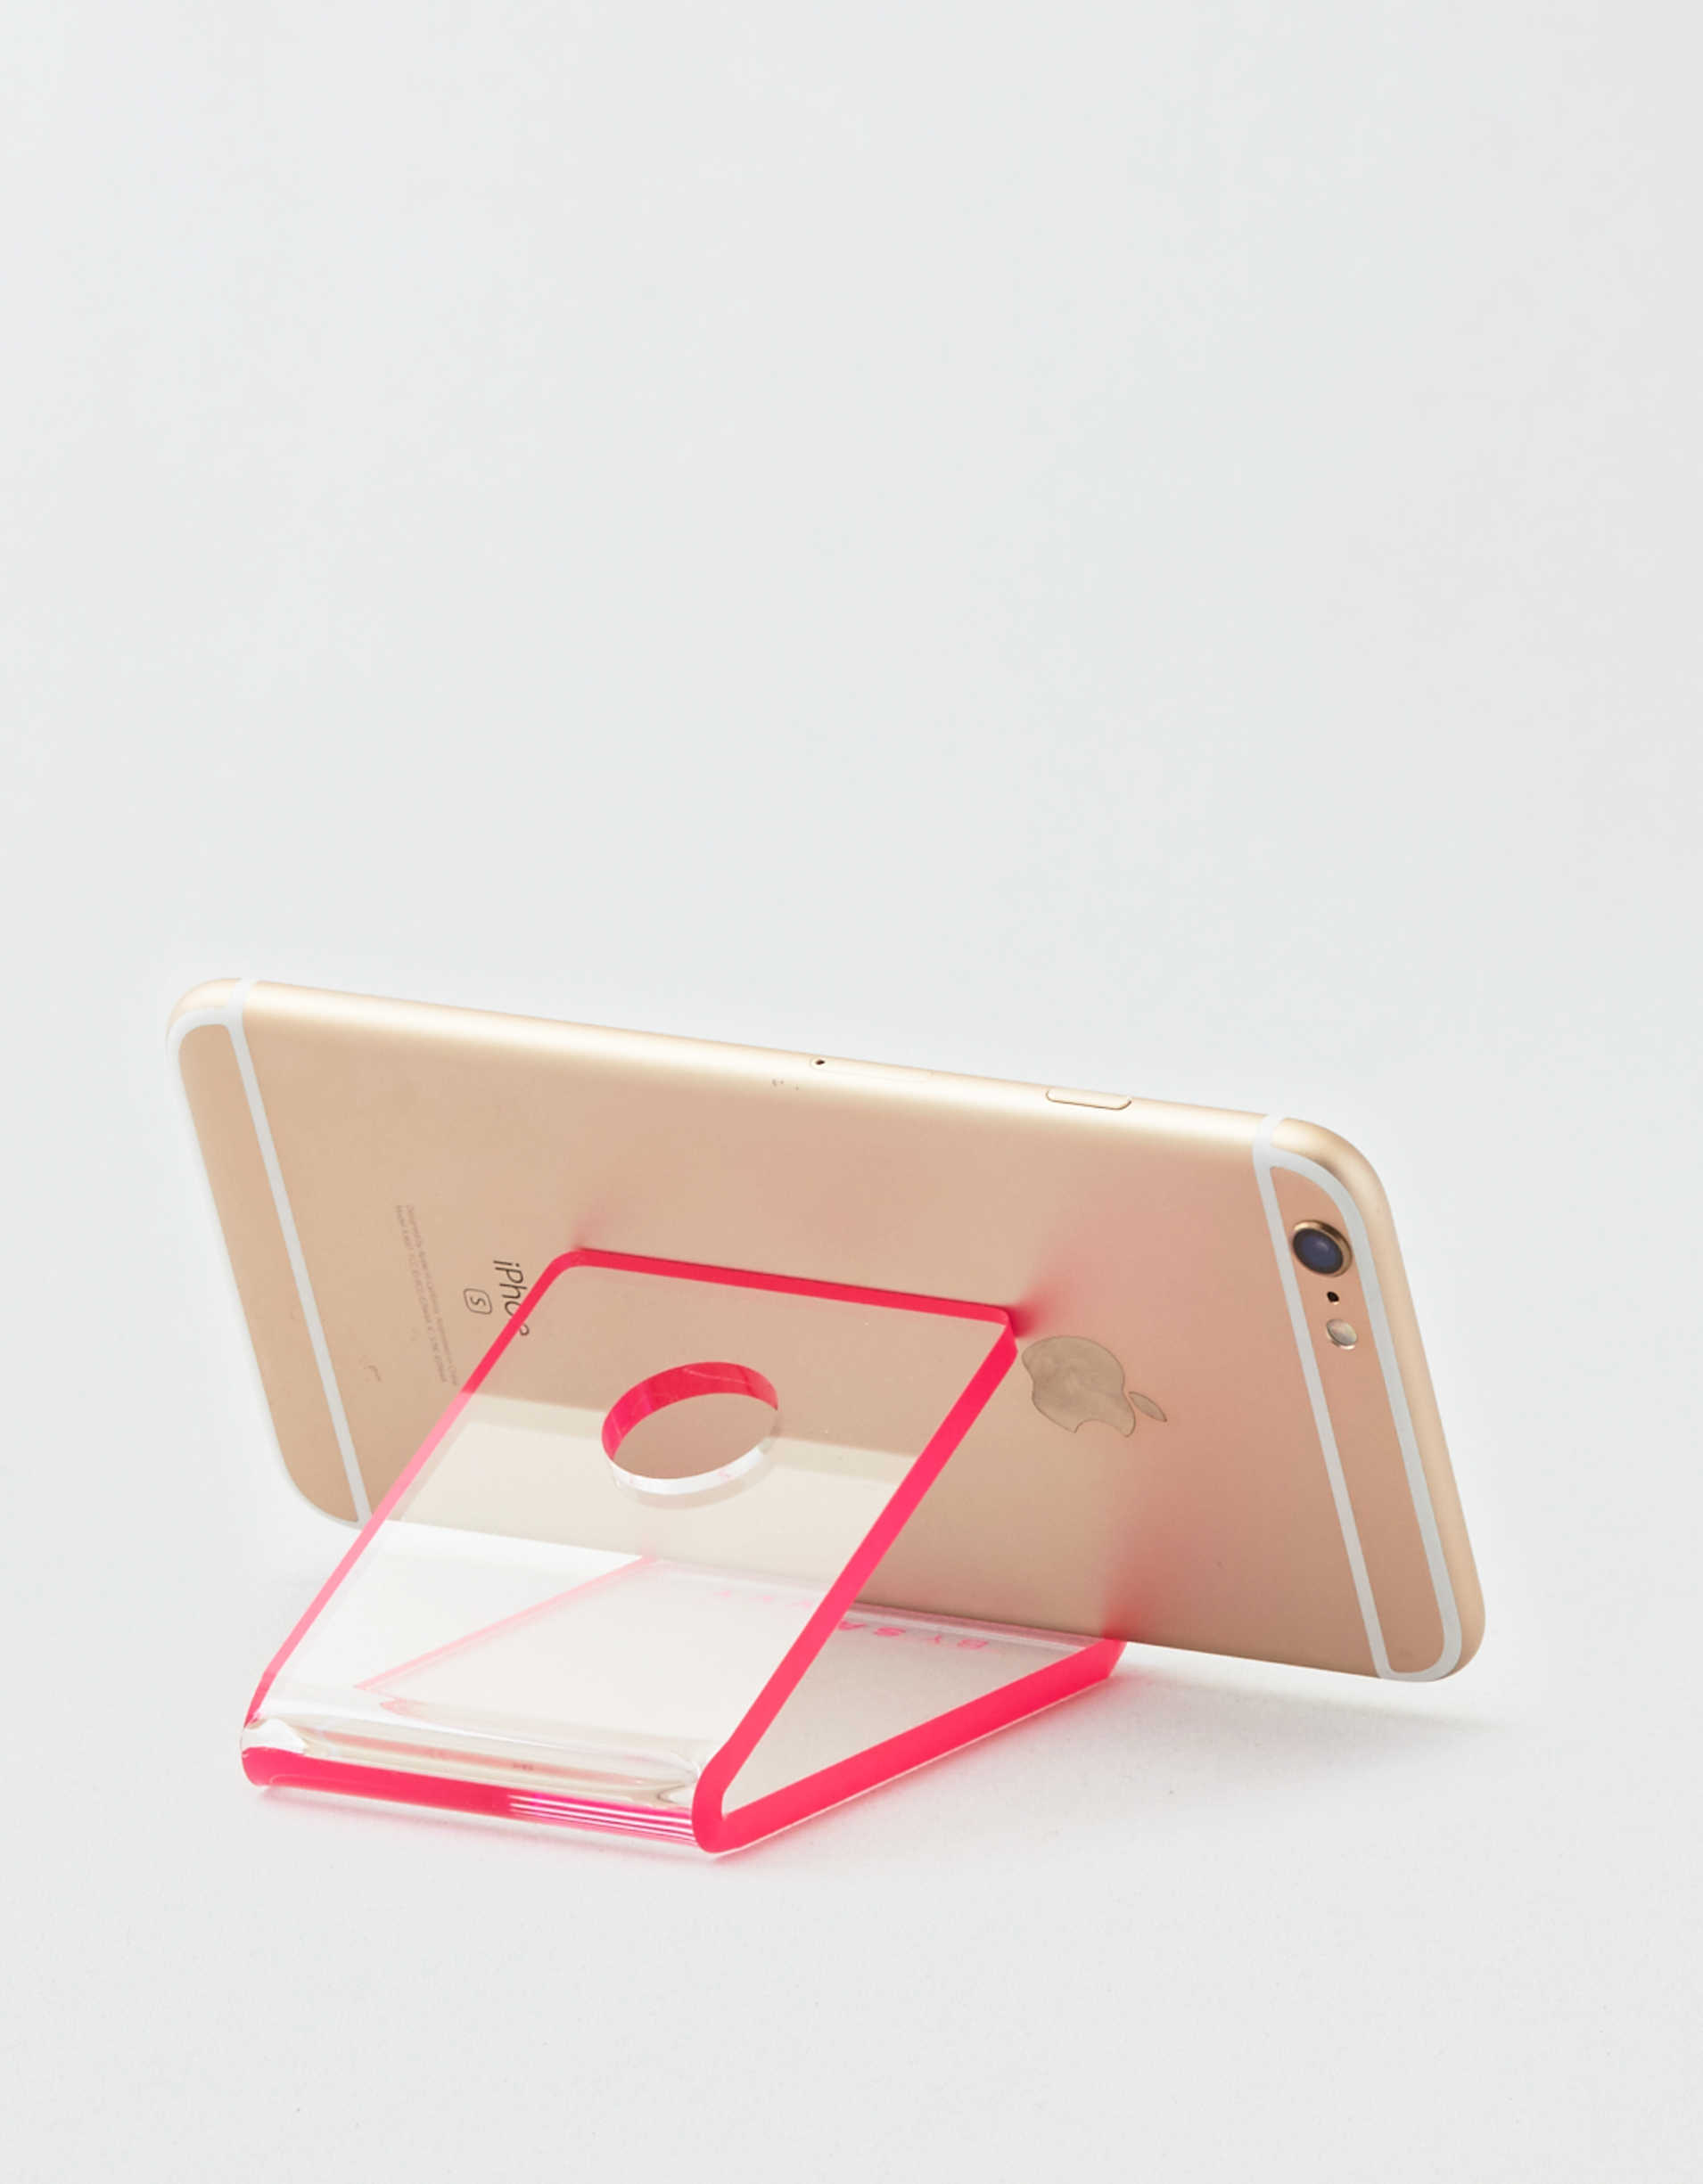 Lund London Neon Me Phone Stand